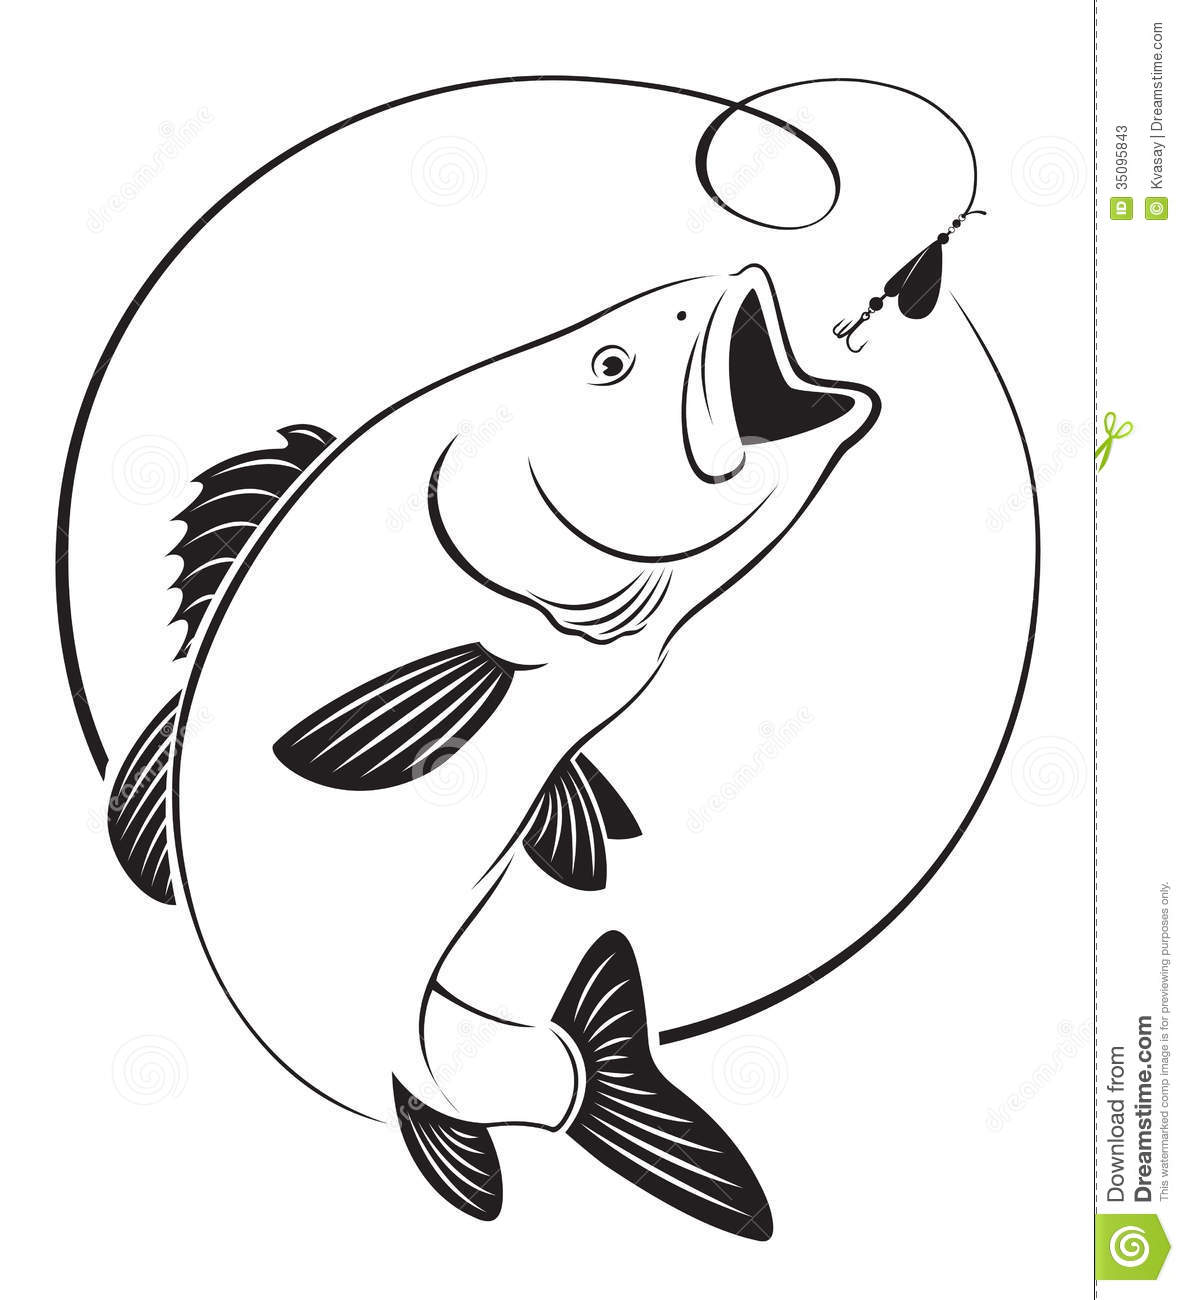 352 Bass Fish free clipart.